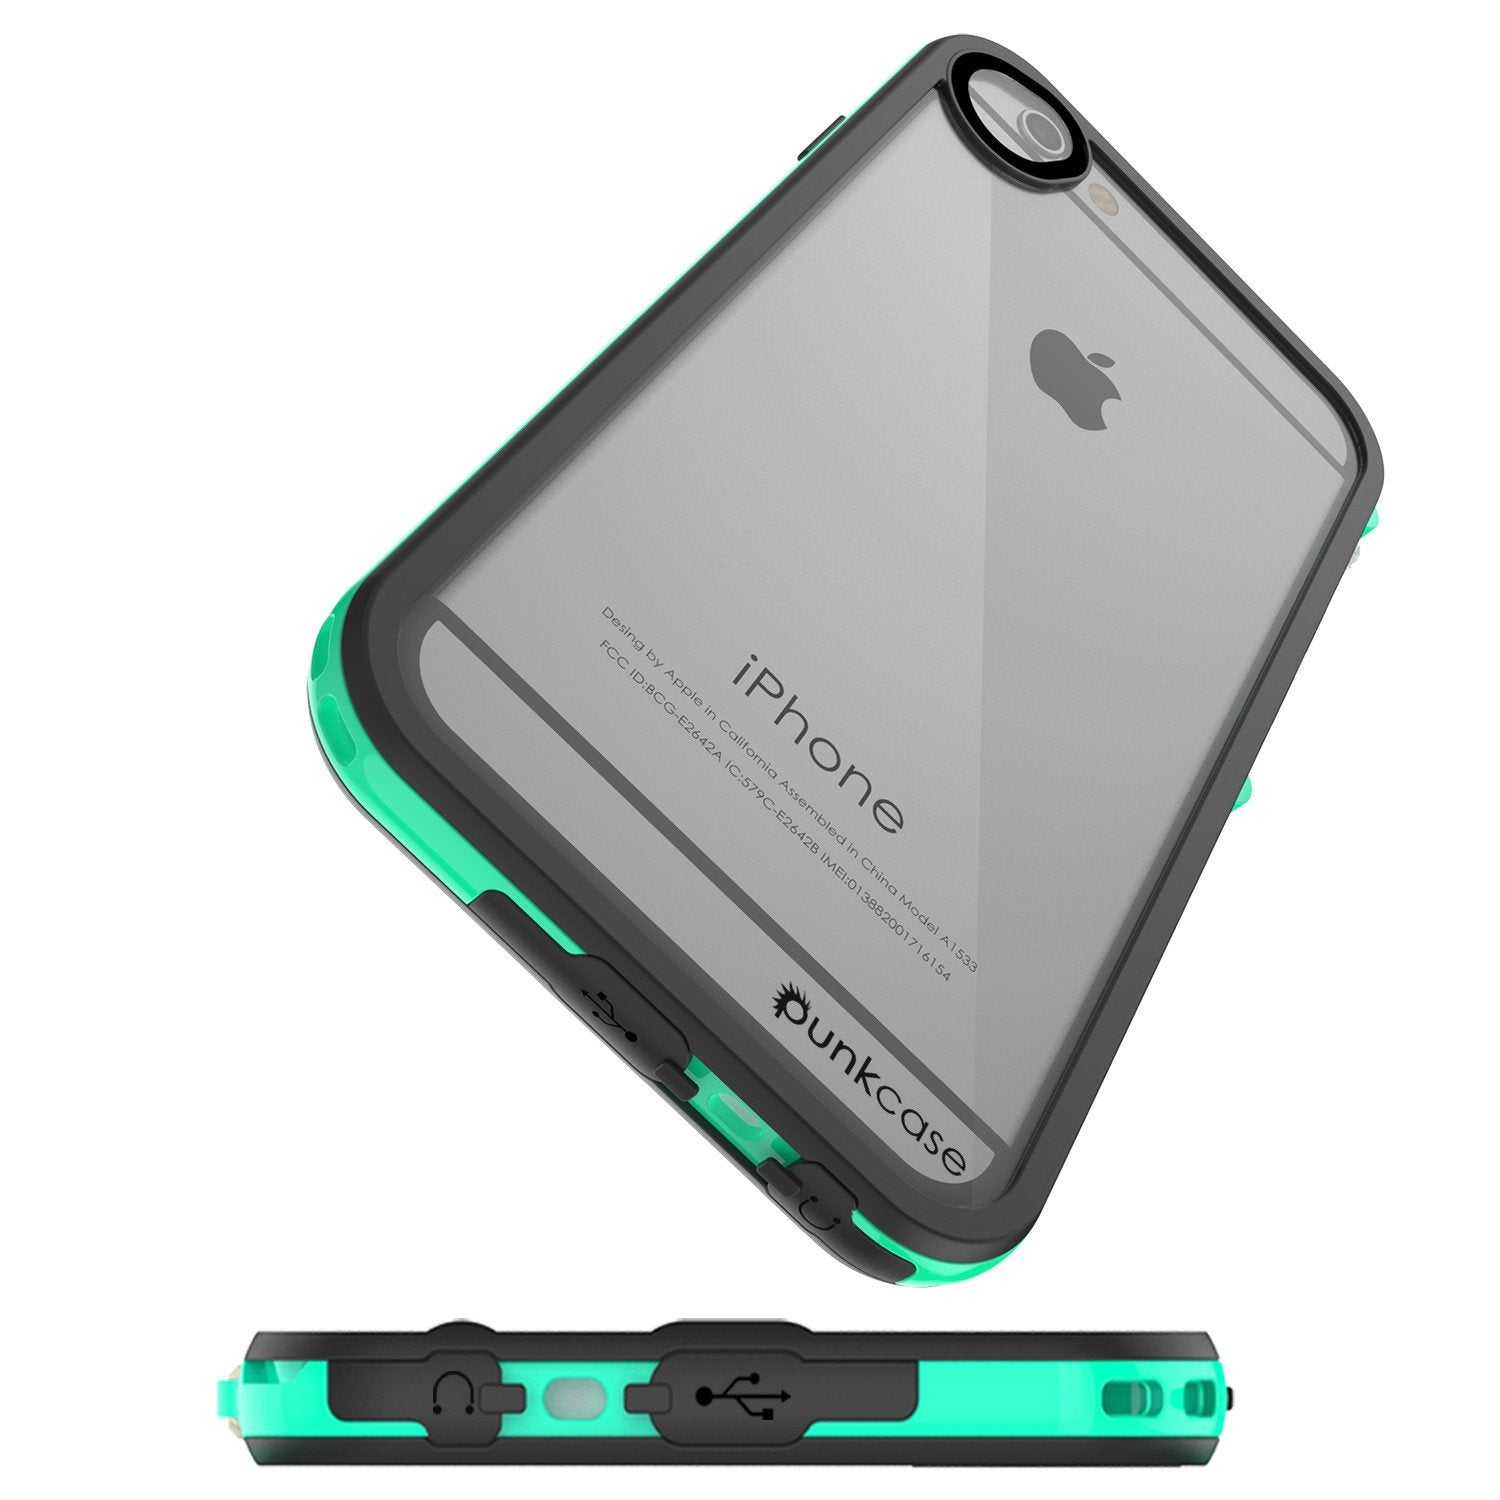 Apple iPhone 7 Waterproof Case, PUNKcase CRYSTAL 2.0 Teal W/ Attached Screen Protector  | Warranty - PunkCase NZ